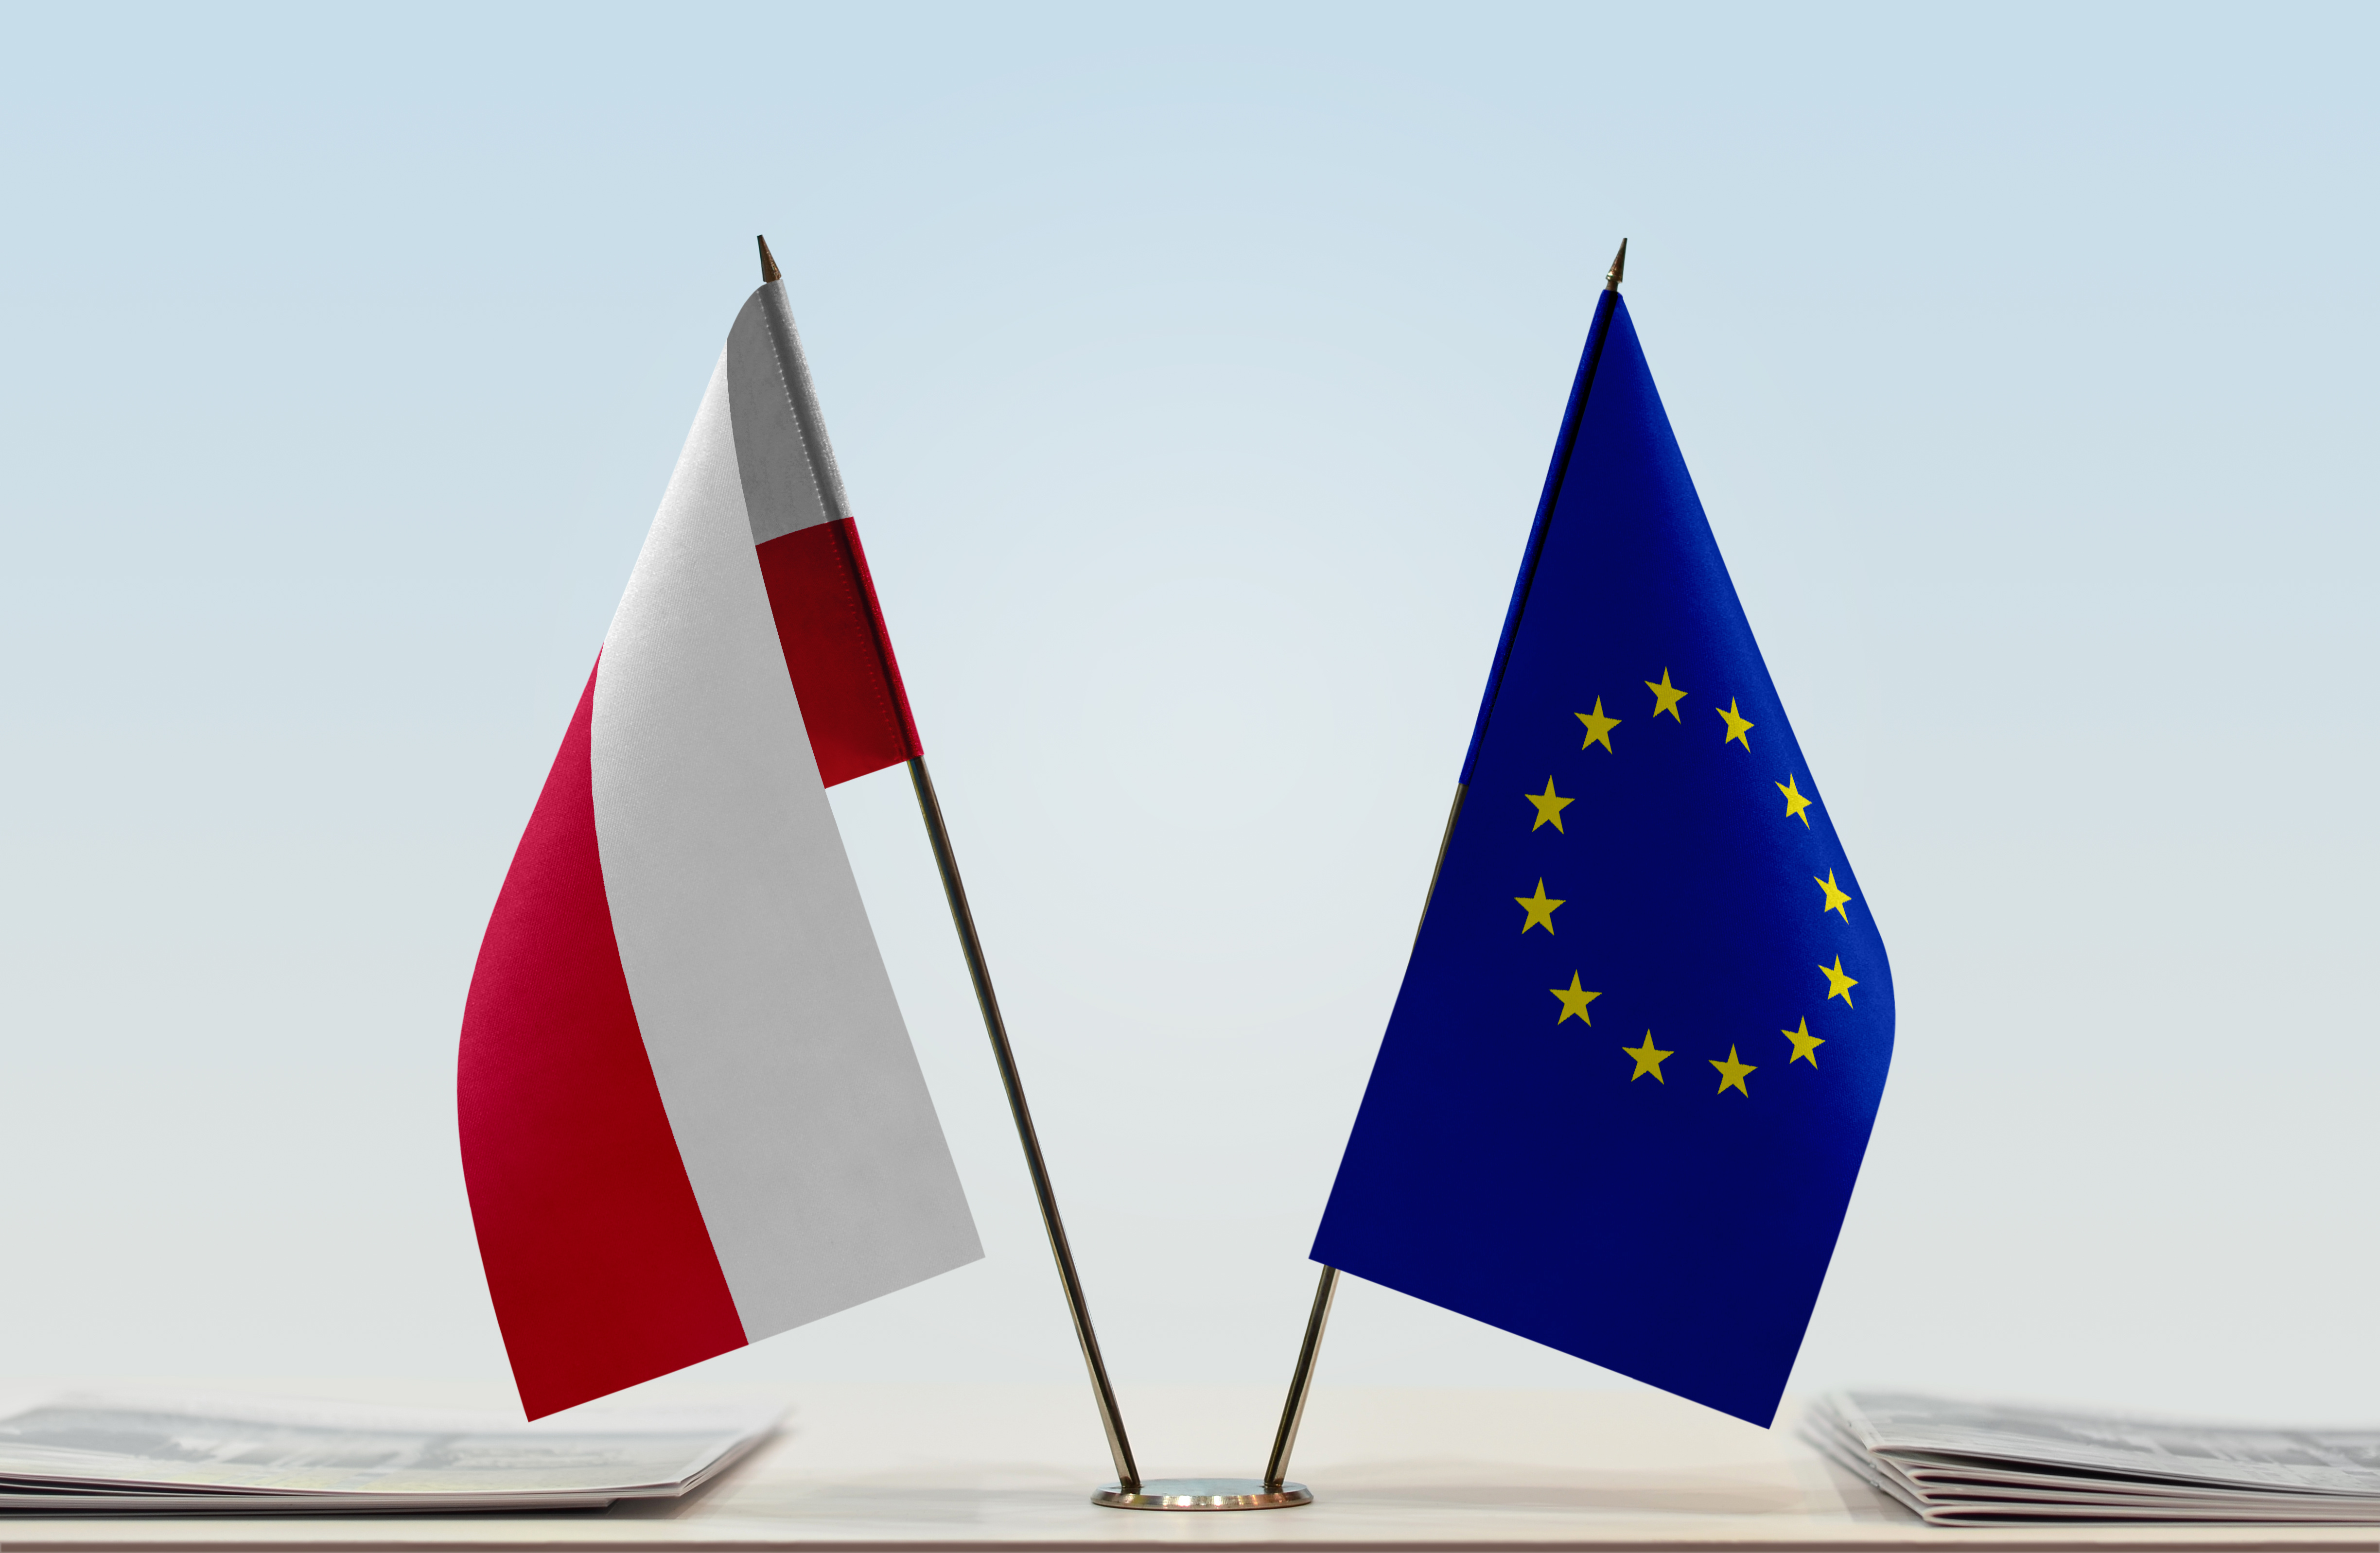 Poland Should Either Join Eurozone Or Issue Own CBDC - Stock Exchange CEO